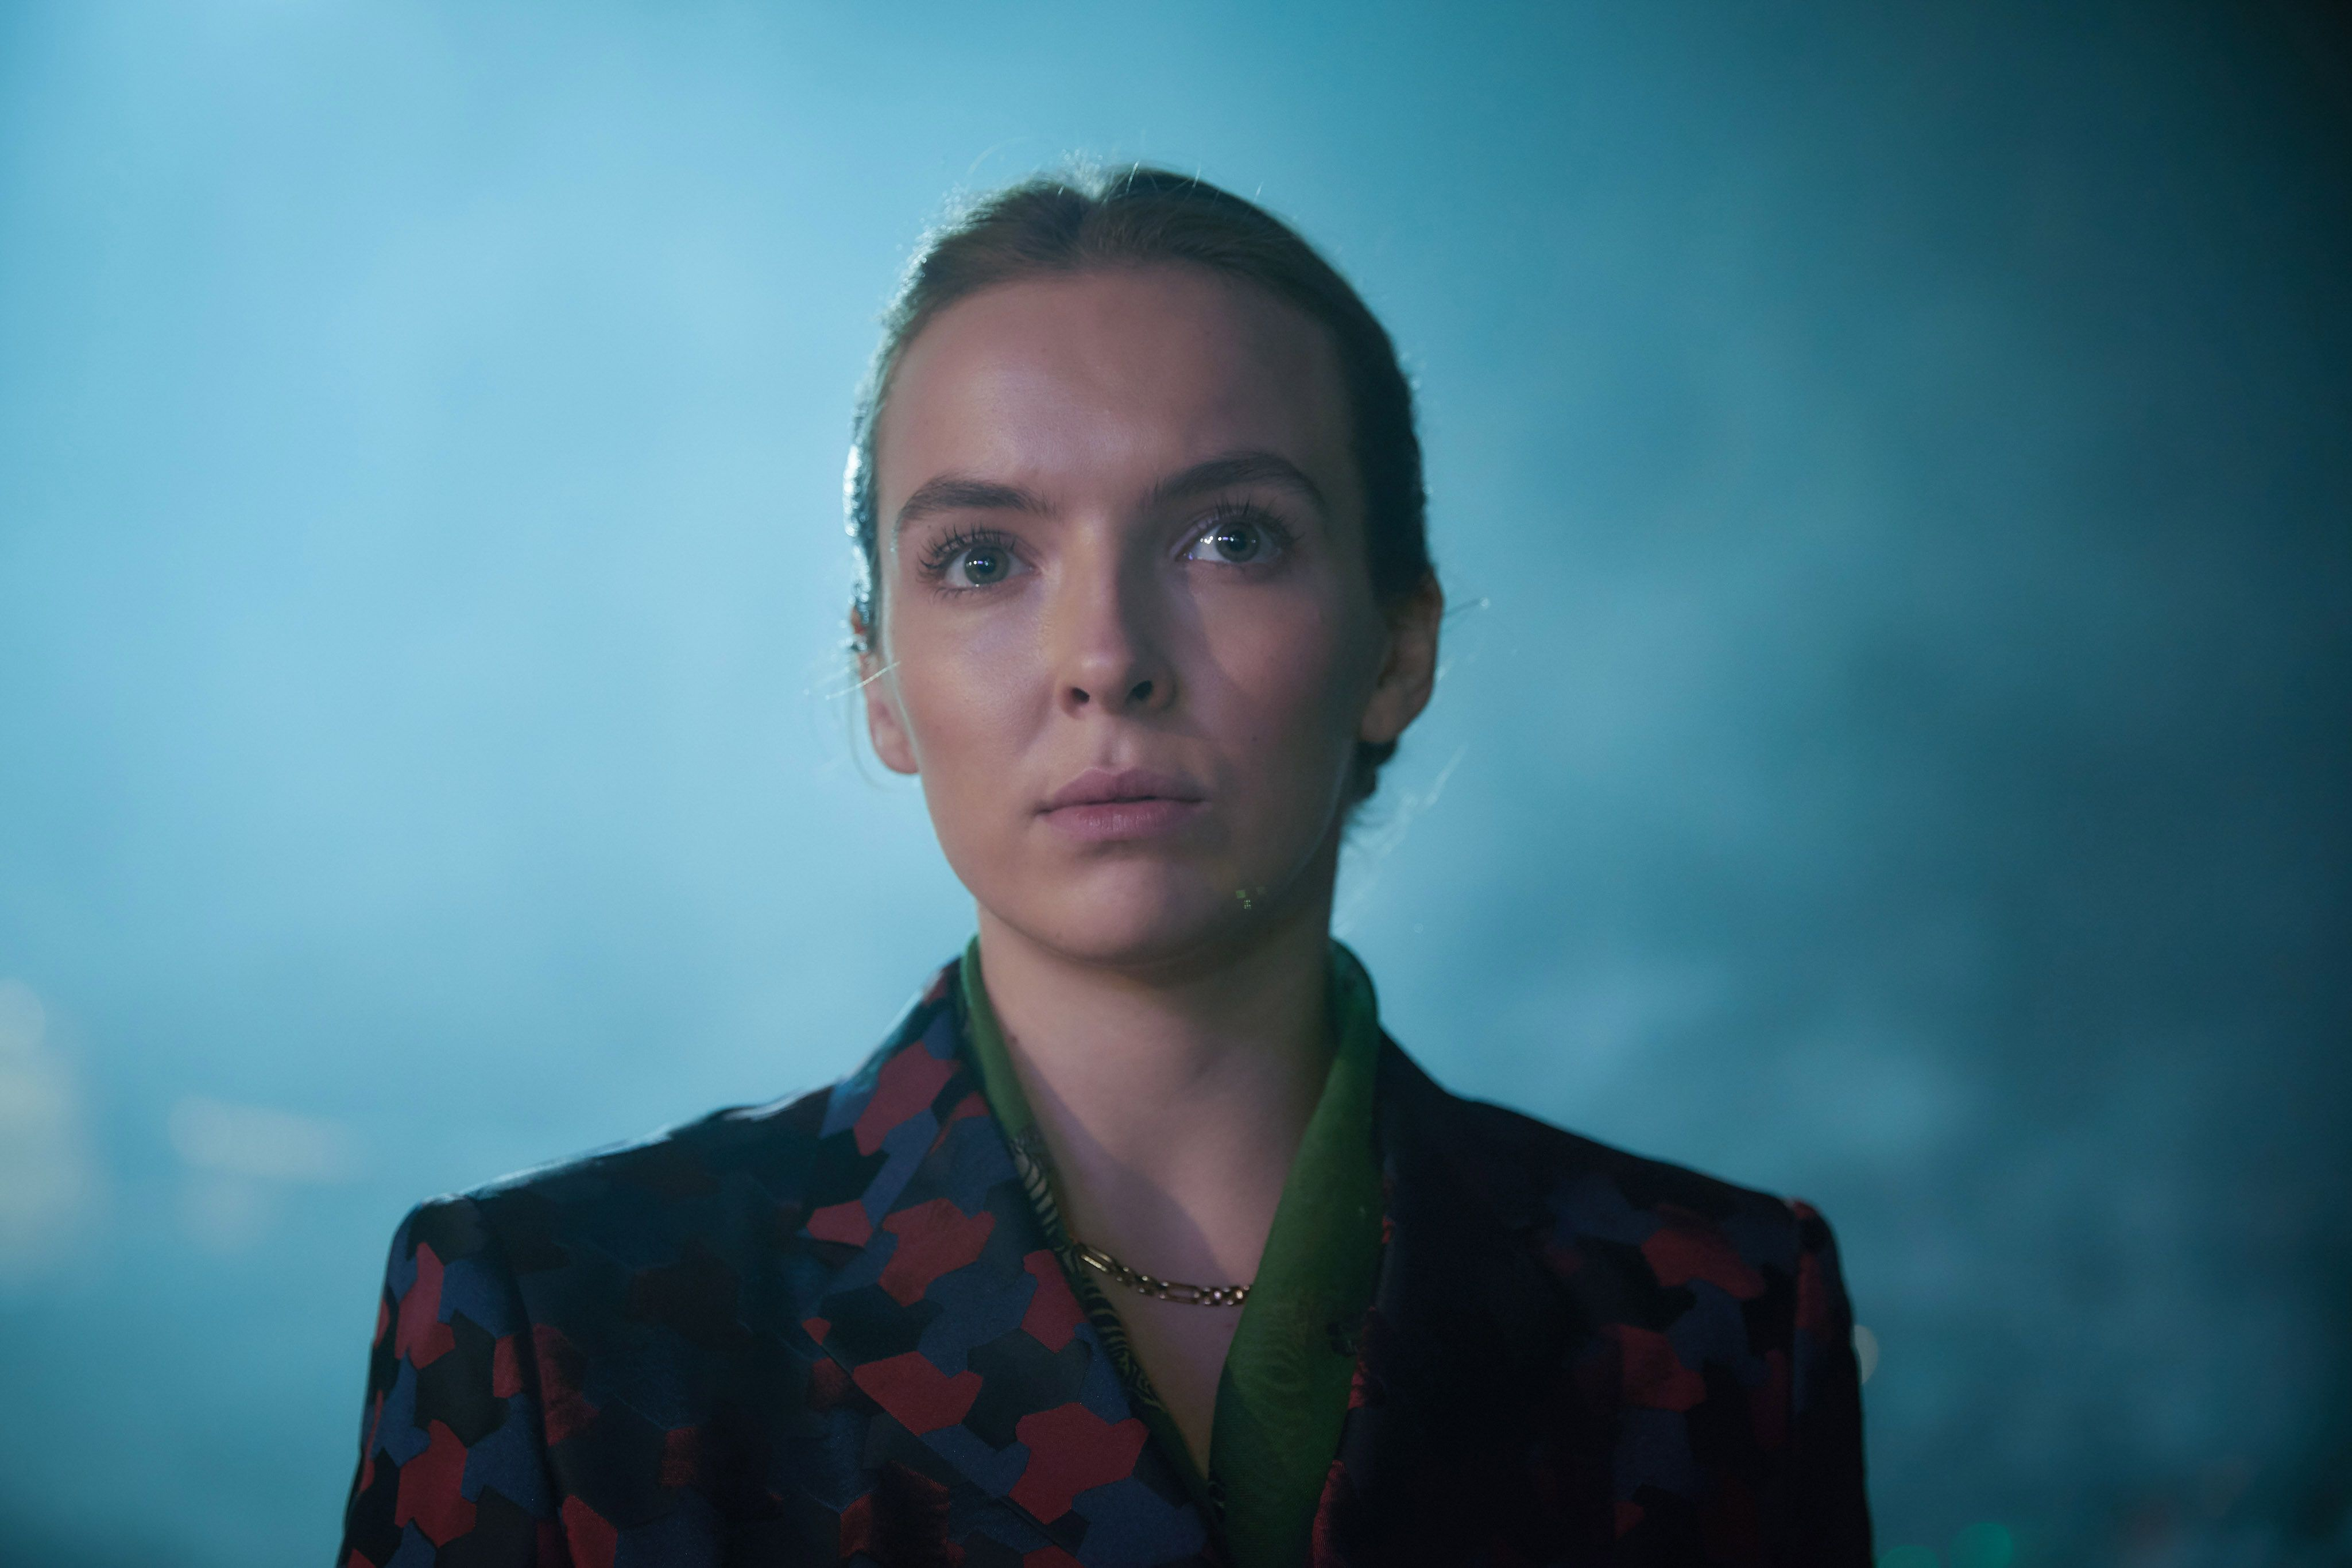 Killing Eve season 3 picture shows Villanelle's deadly attention turning to another character